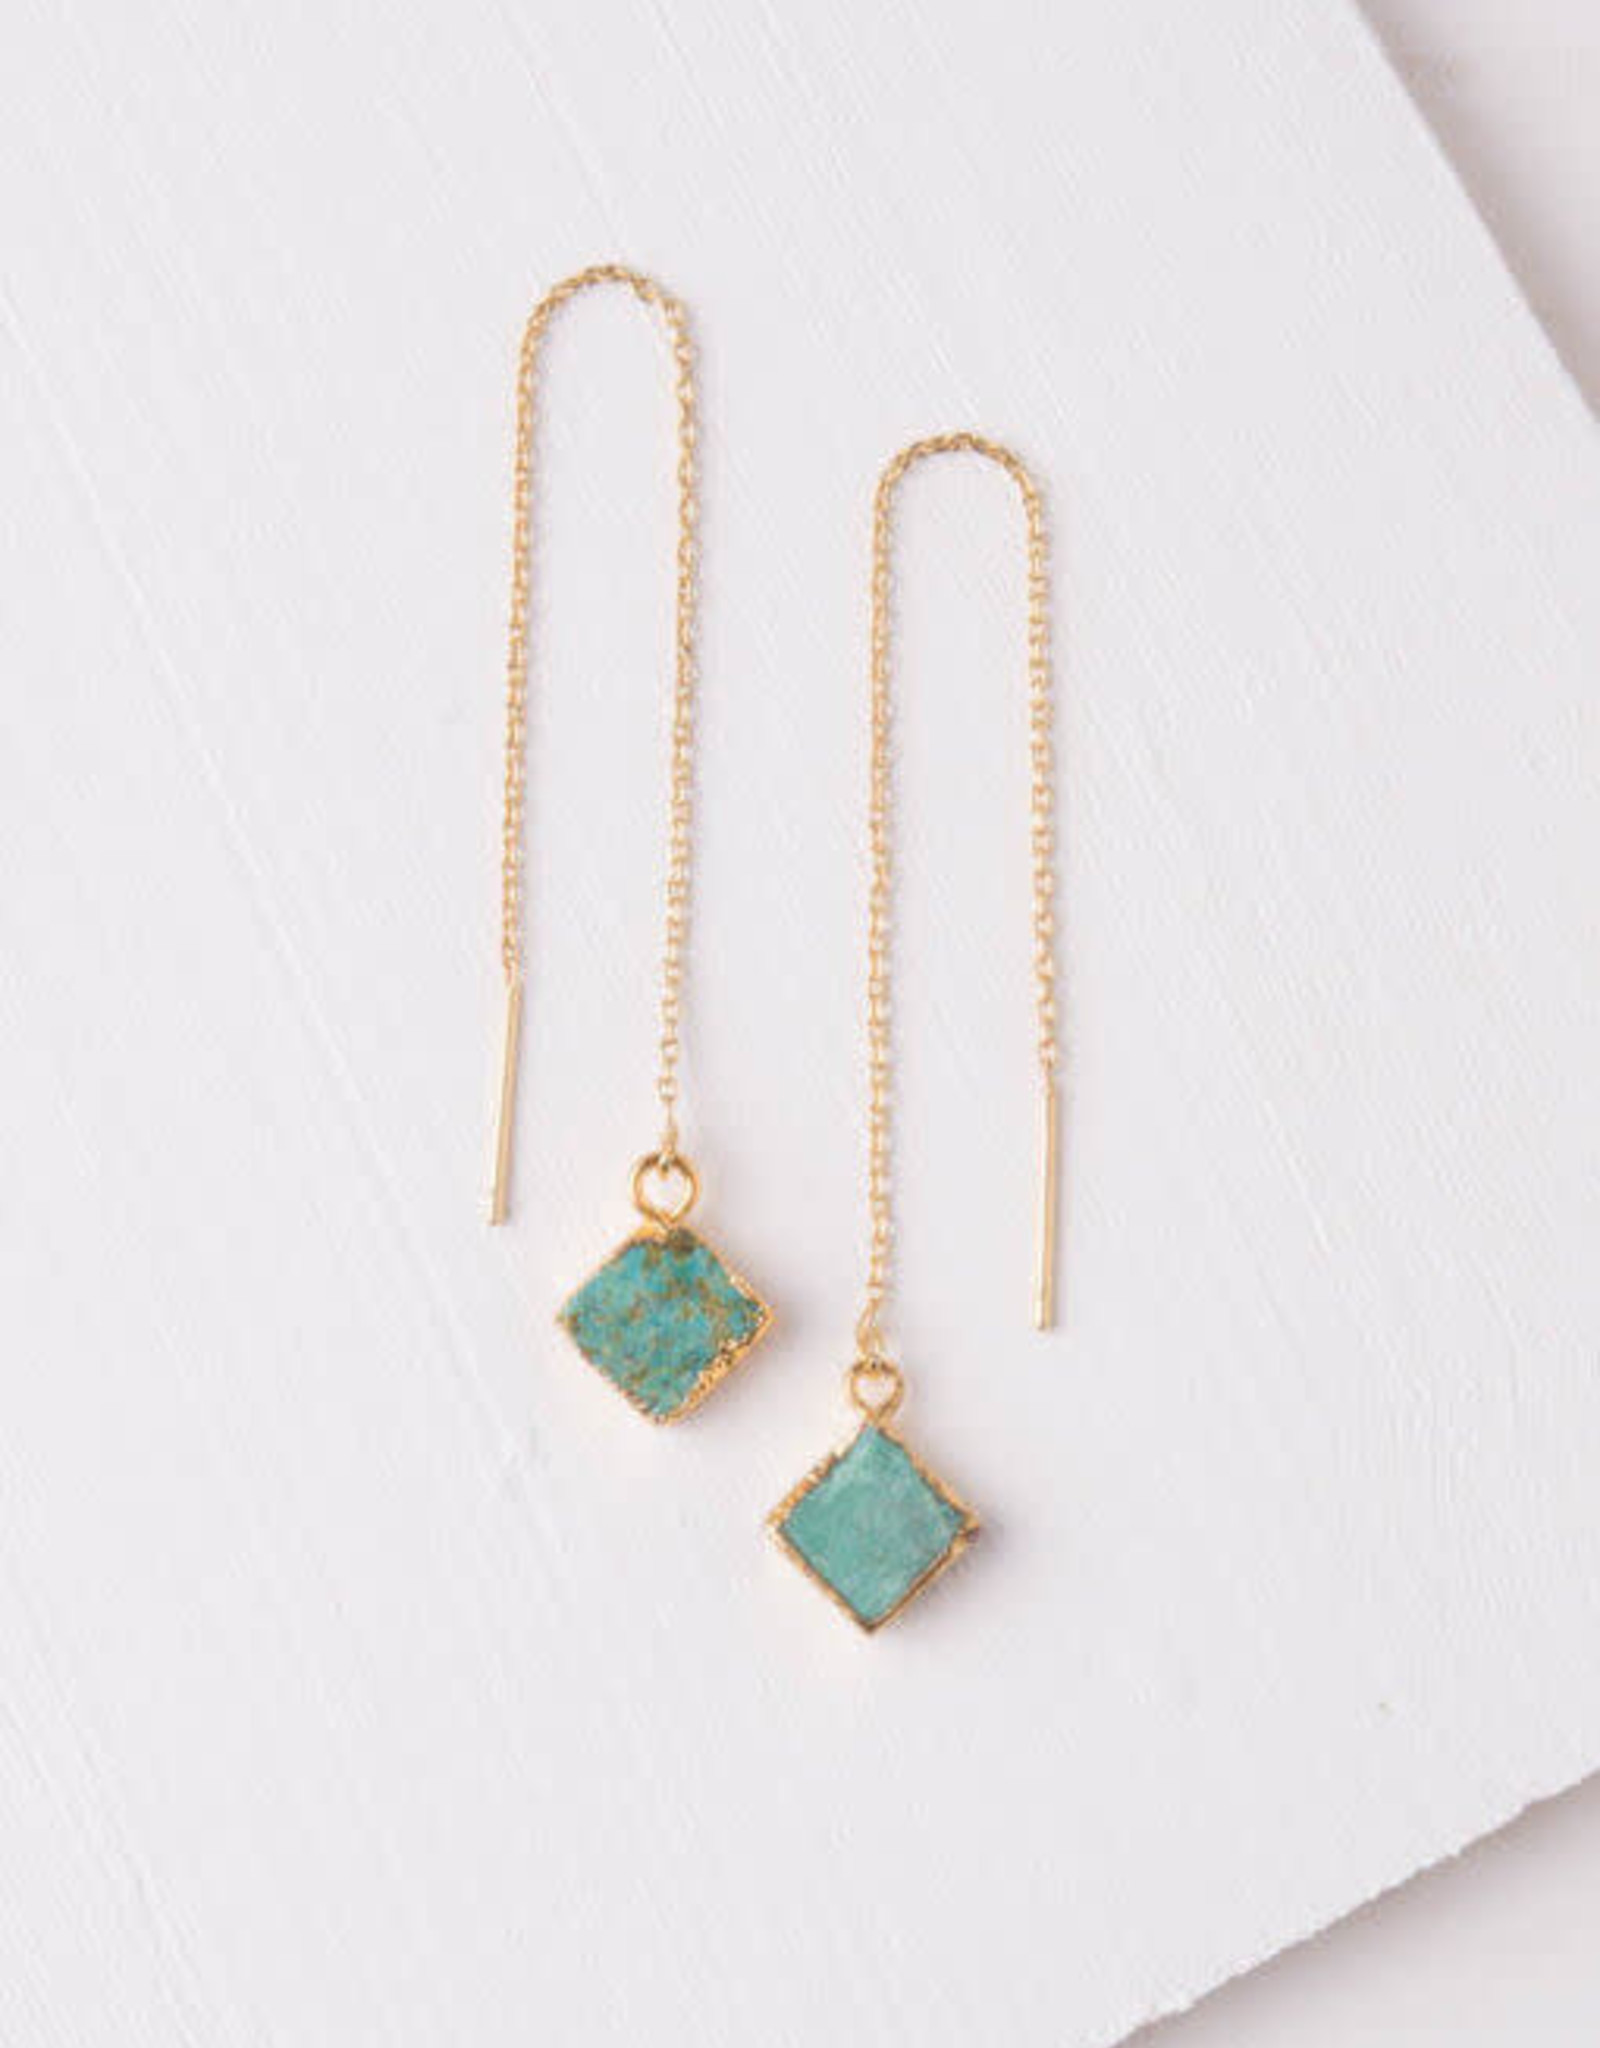 Mary Love, Turquoise Dangle Earrings